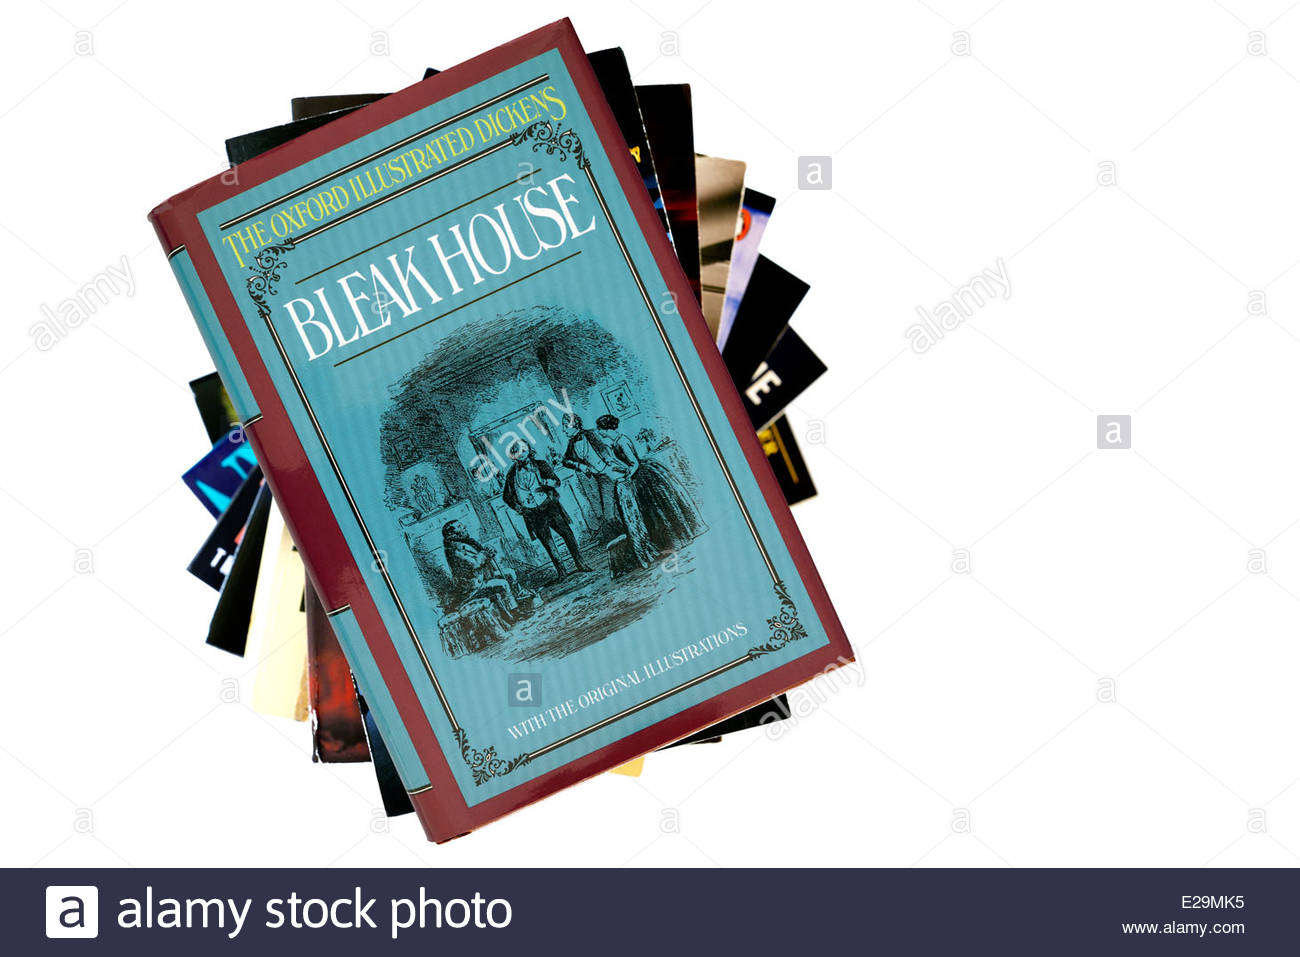 Charles Dickens novel, Bleak House, paperback title stacked used books, England - Stock Image